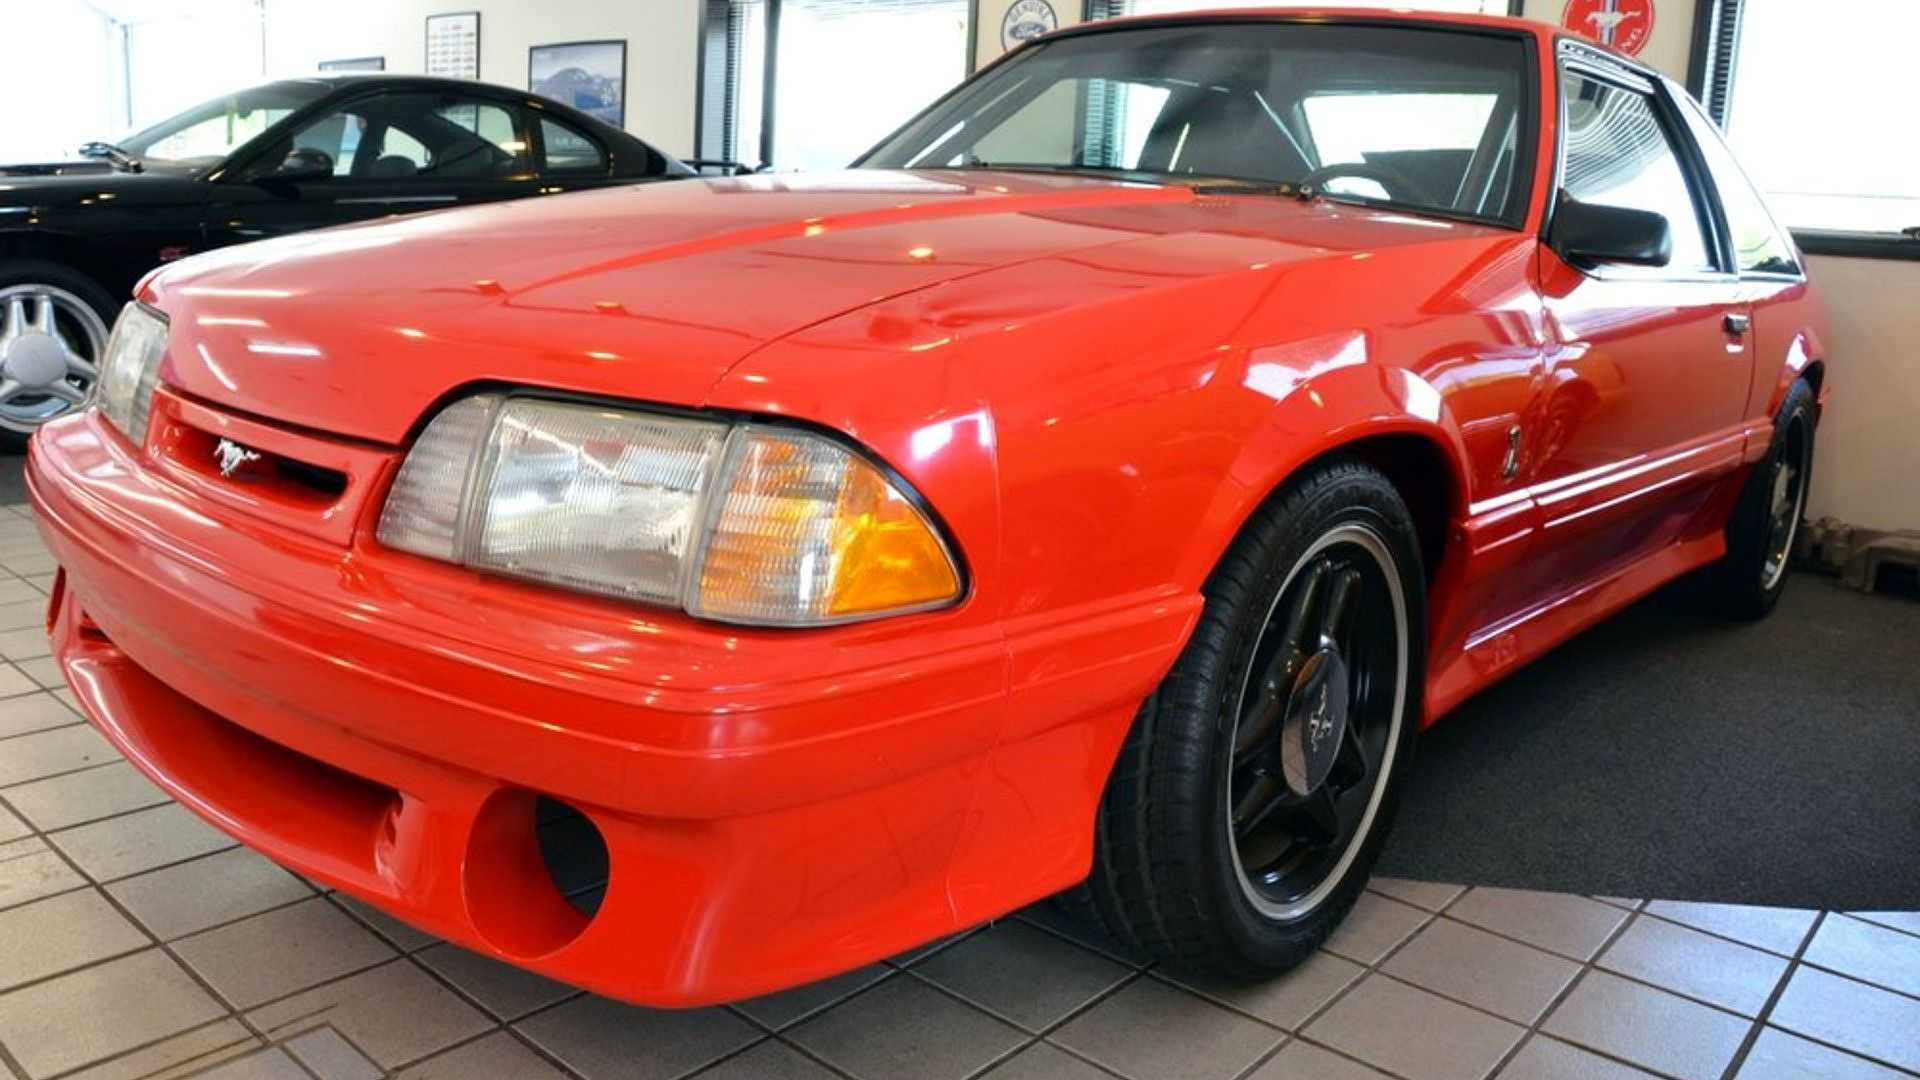 This Rare Mustang Cobra R Prototype Should Have Been Destroyed